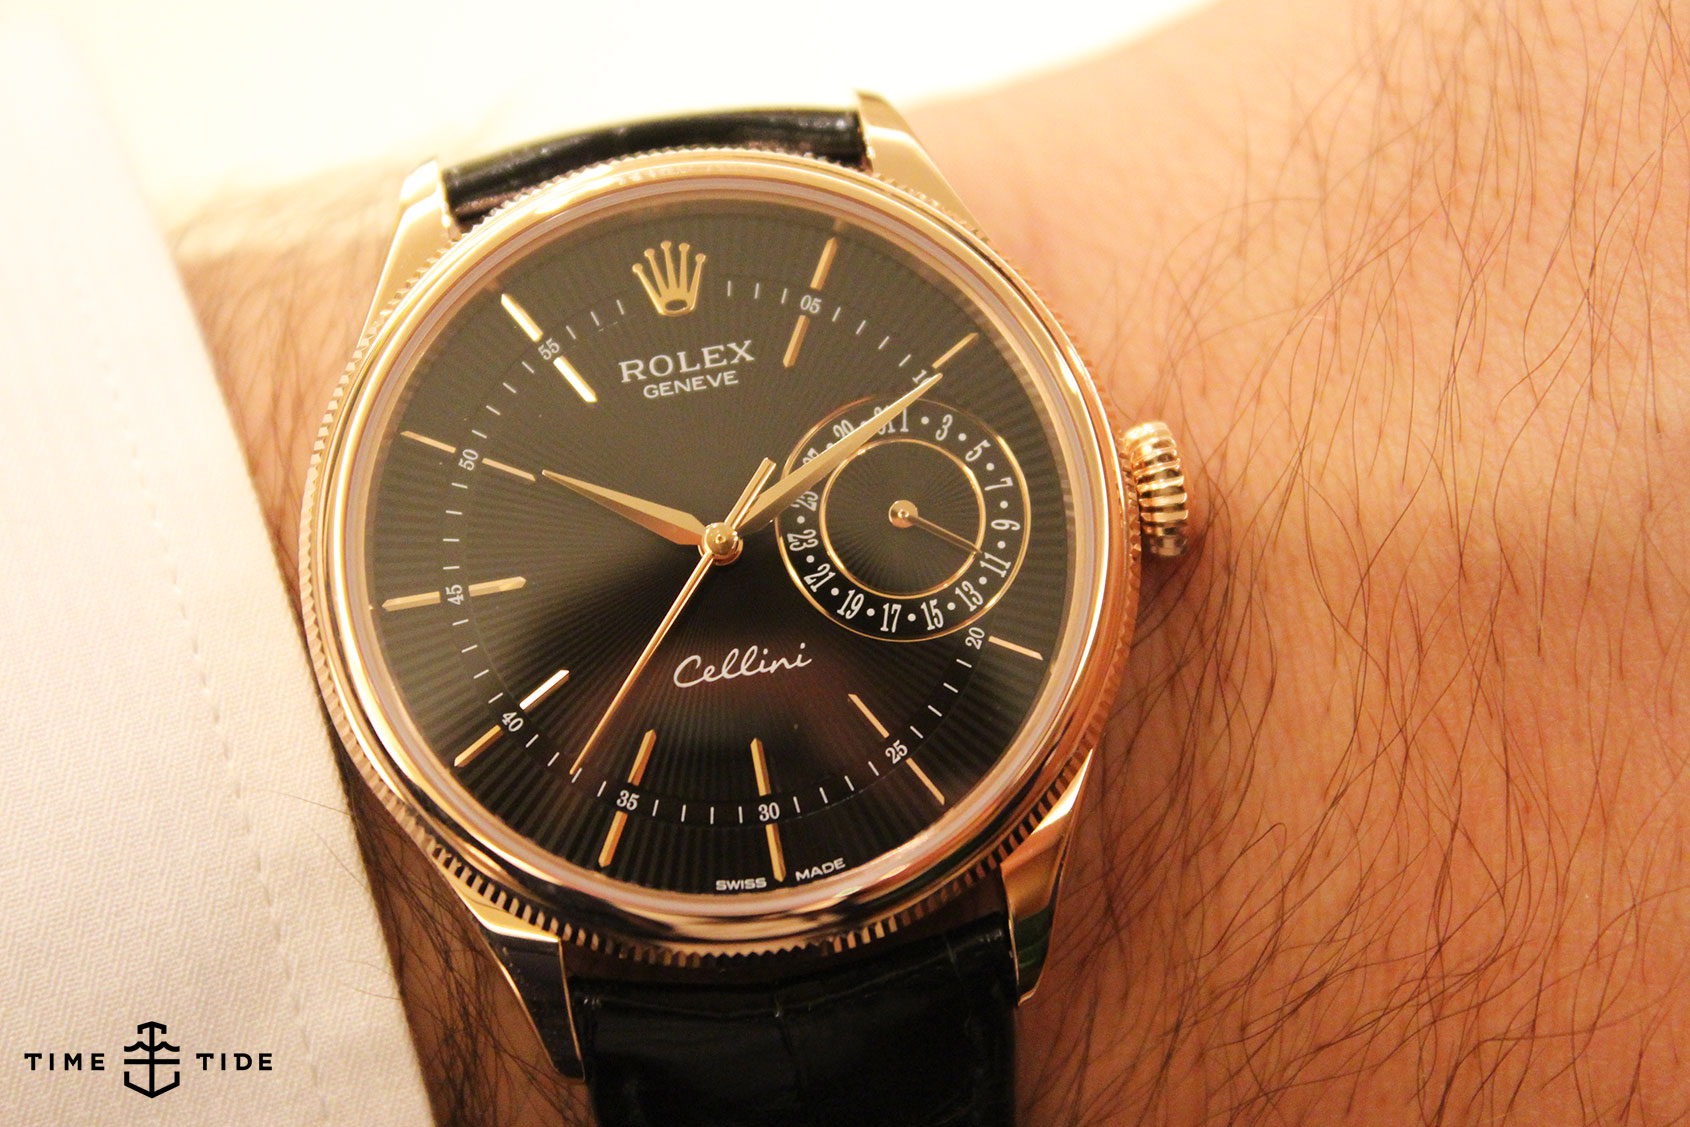 Rolex 2014 cellini collection first look for Rolex cellini